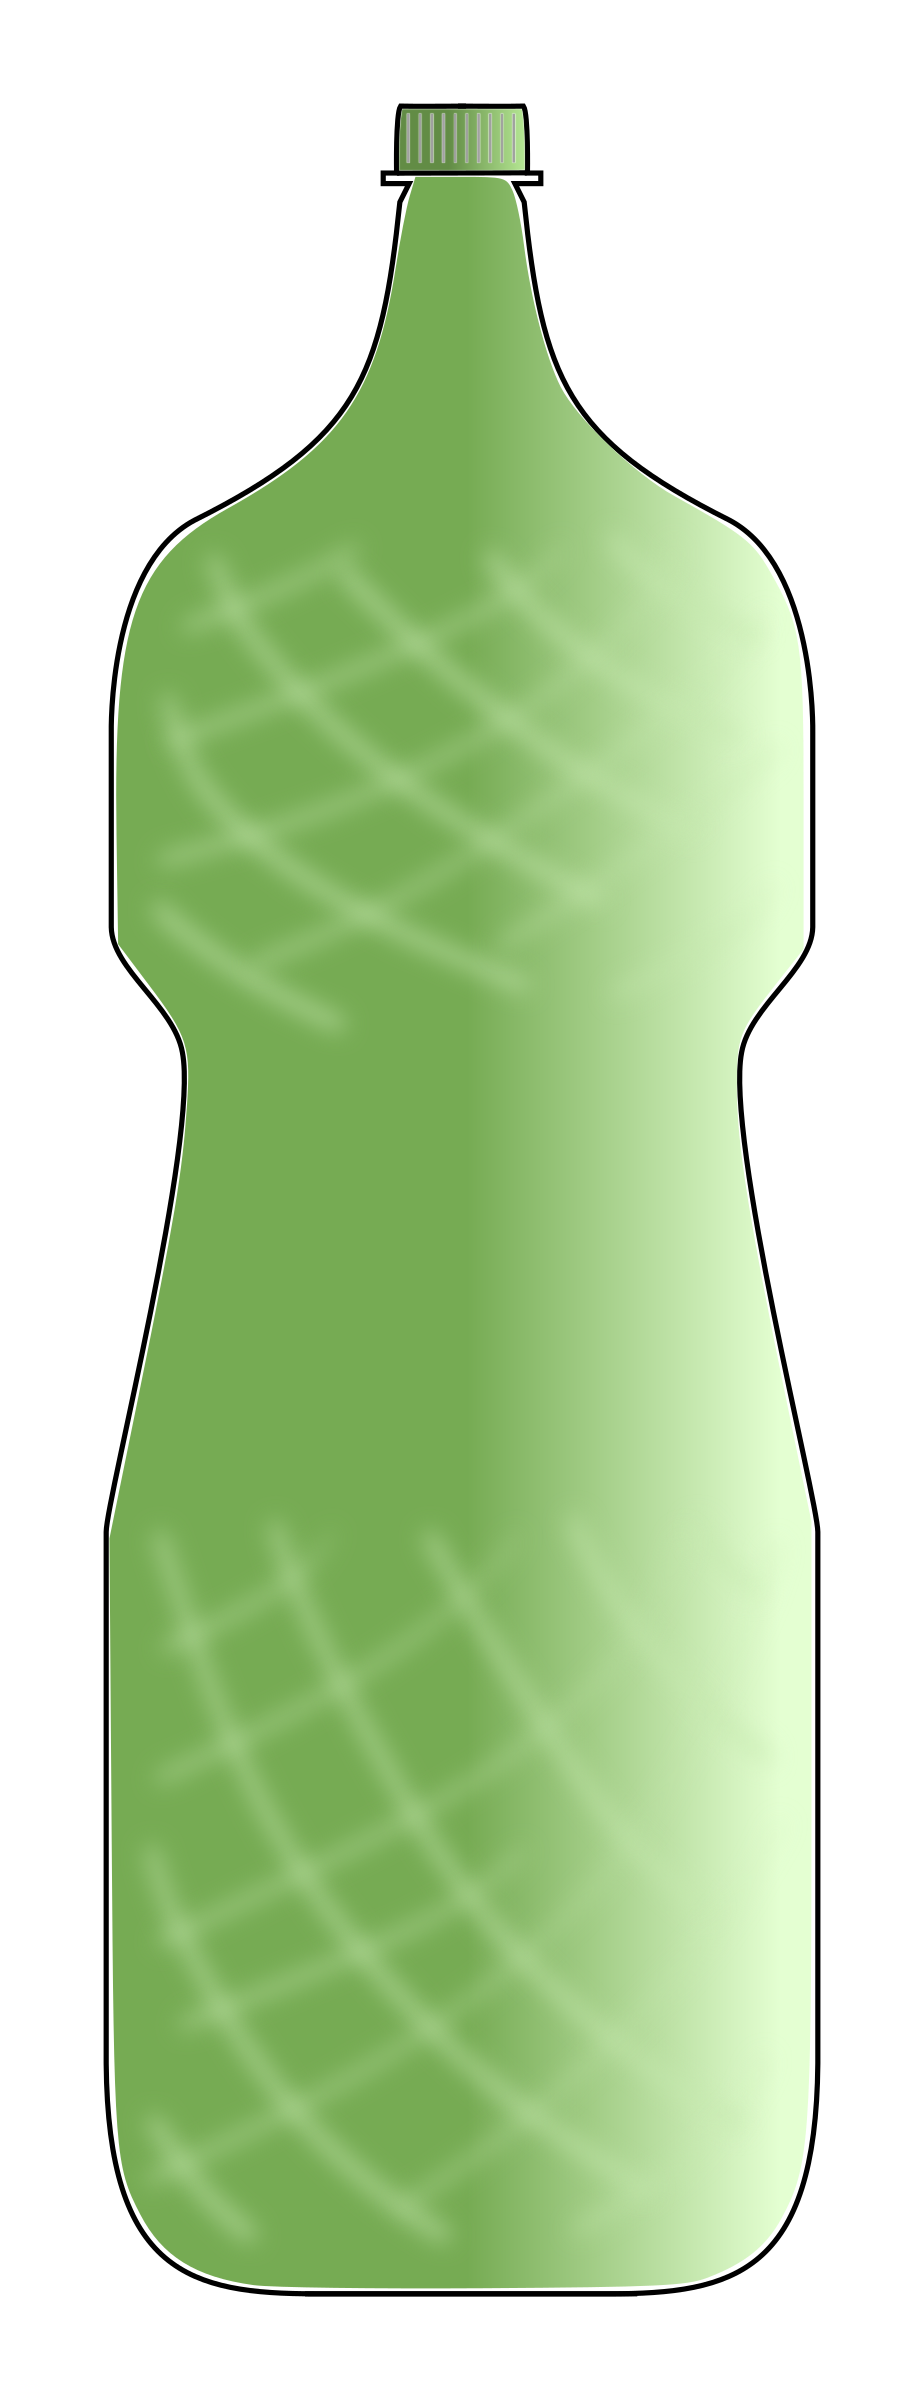 water bottle by cprostire